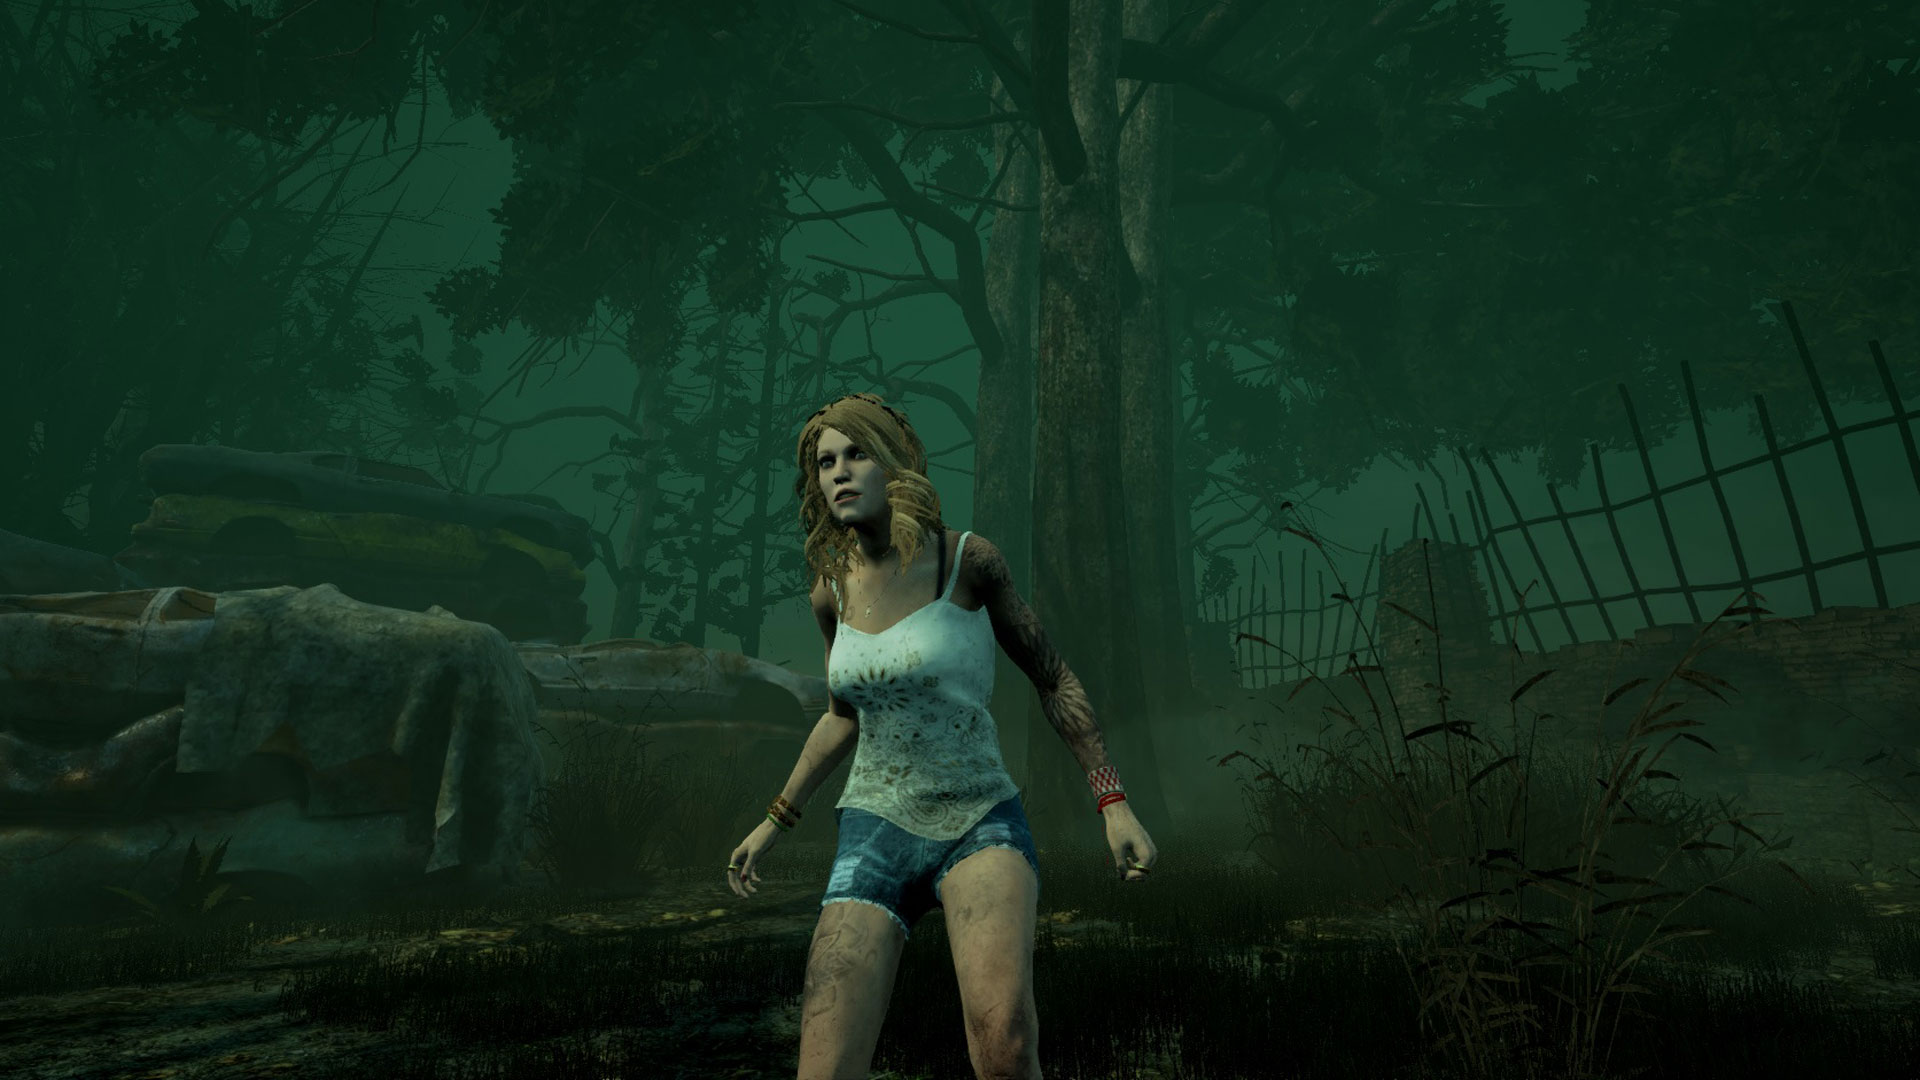 Dead By Daylight Curtain Call New Dlc With Killer And